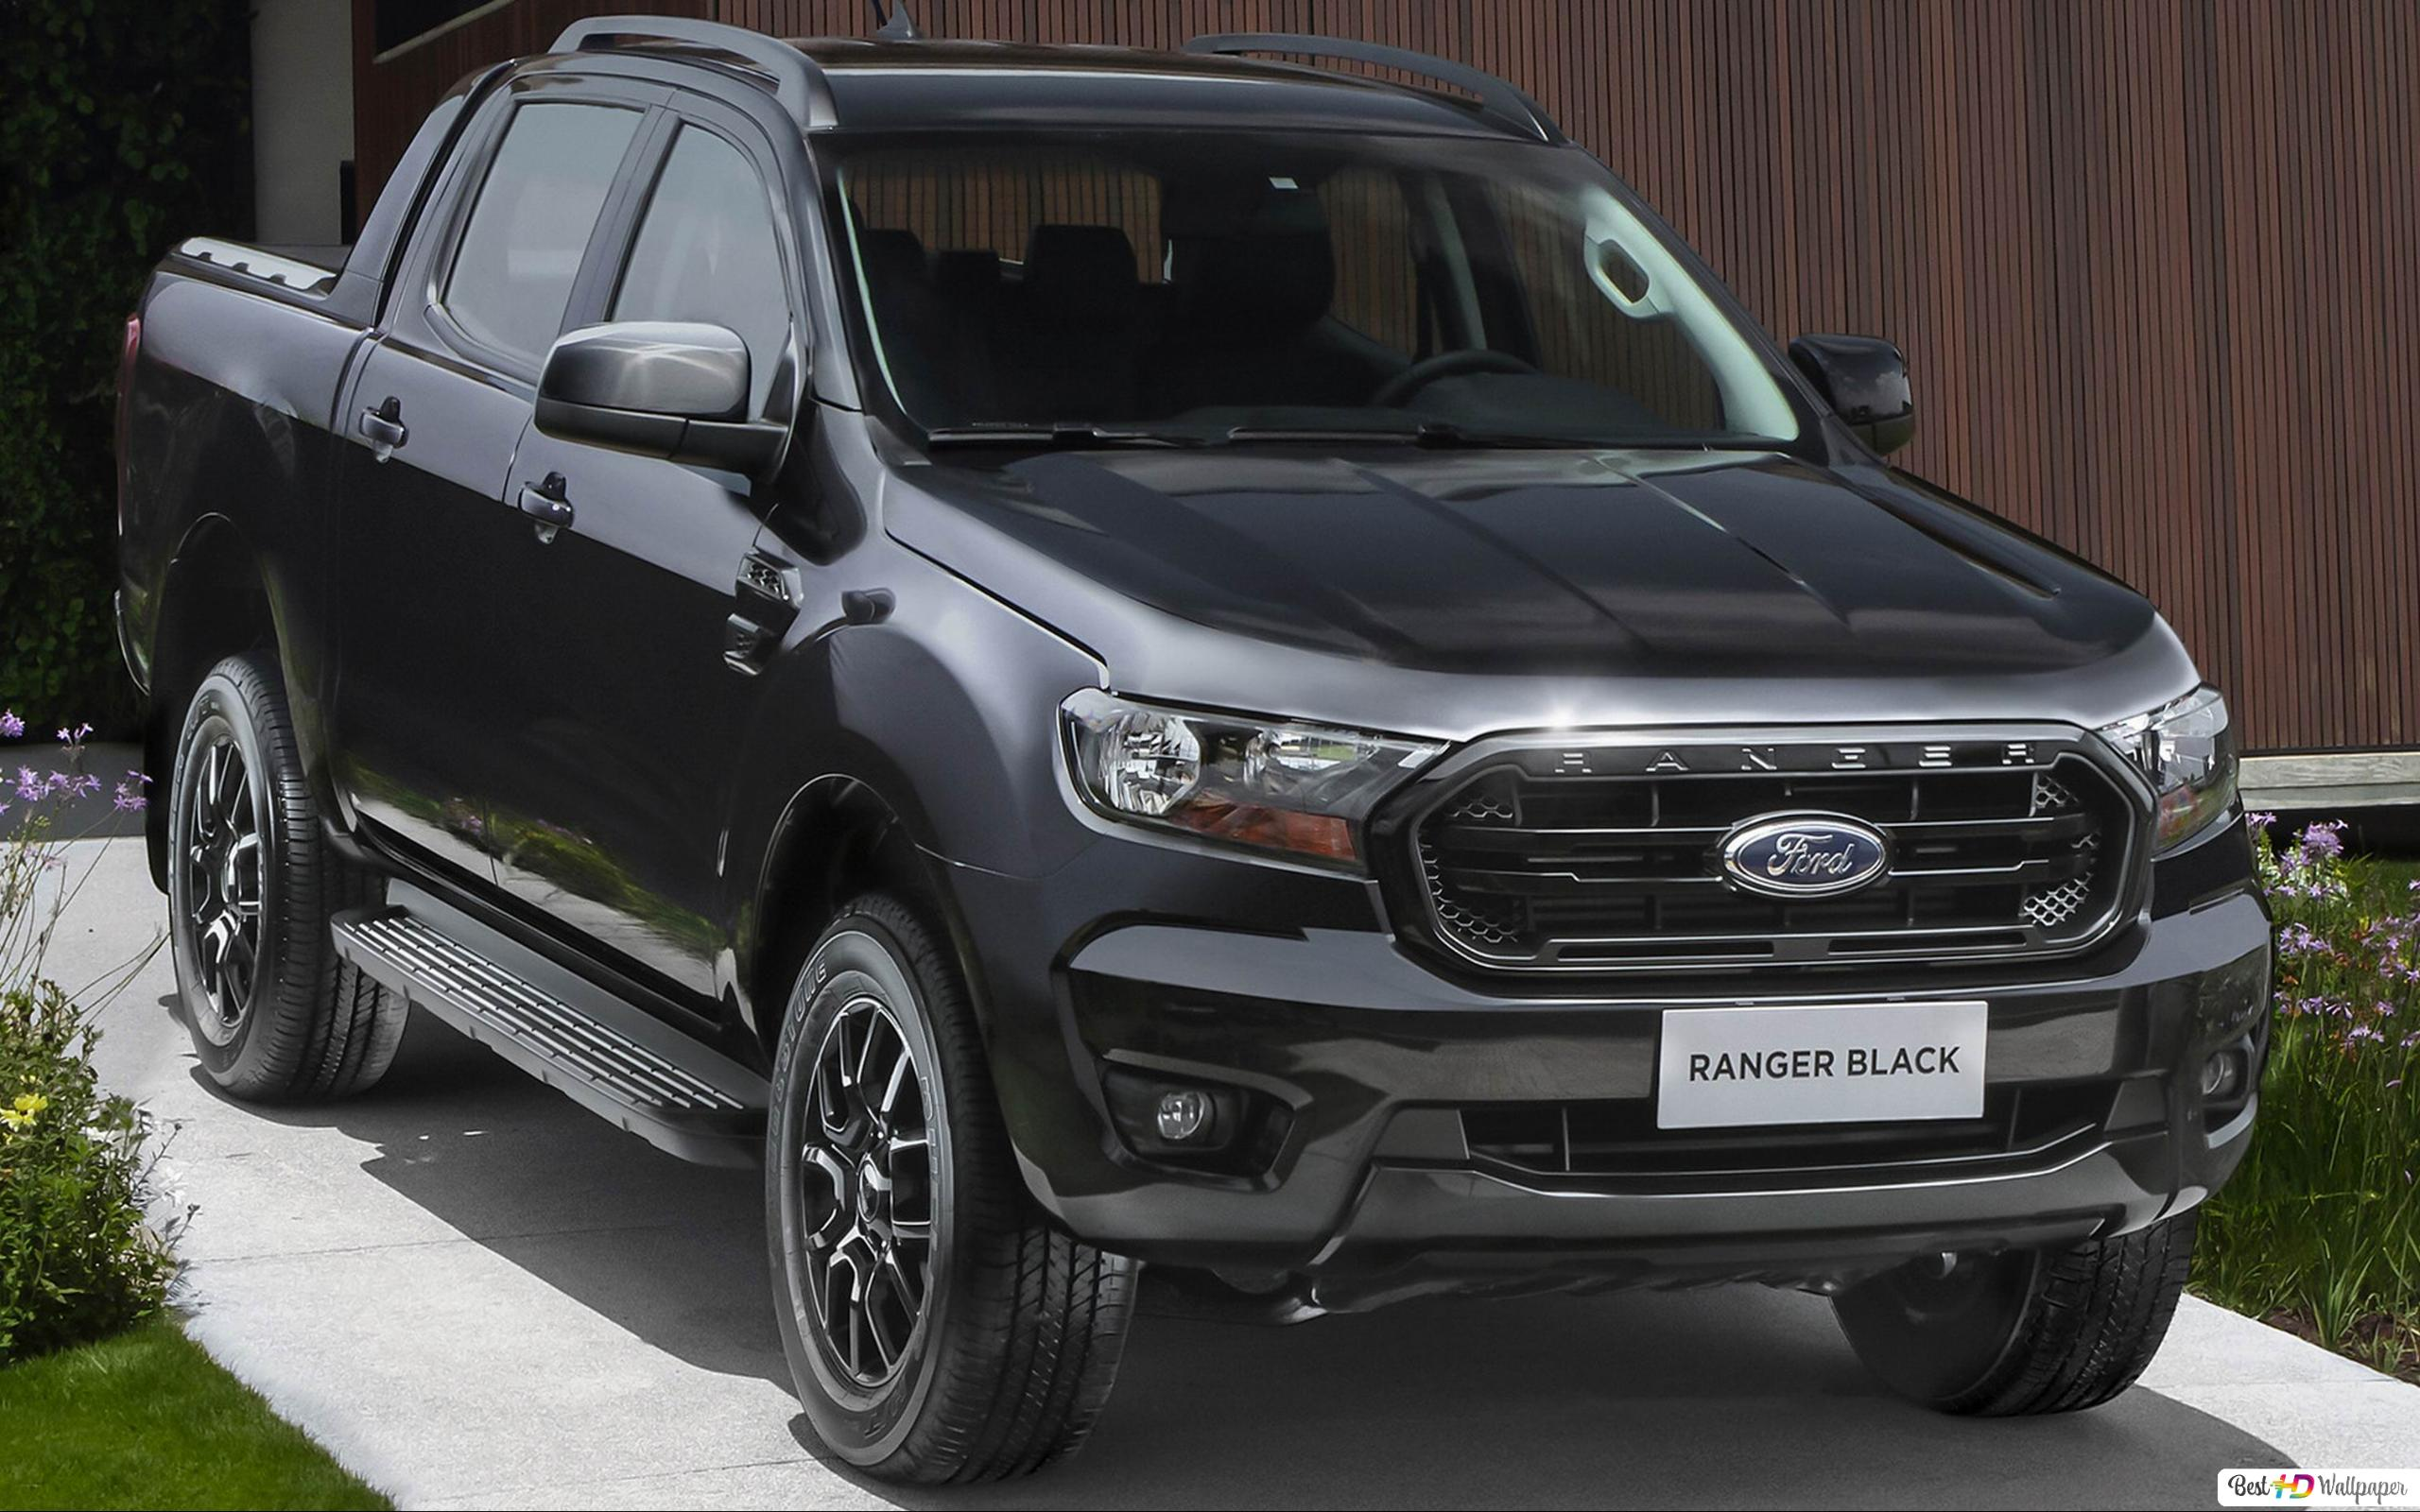 Ford Ranger Black Double Cab 2021 01 Hd Wallpaper Download